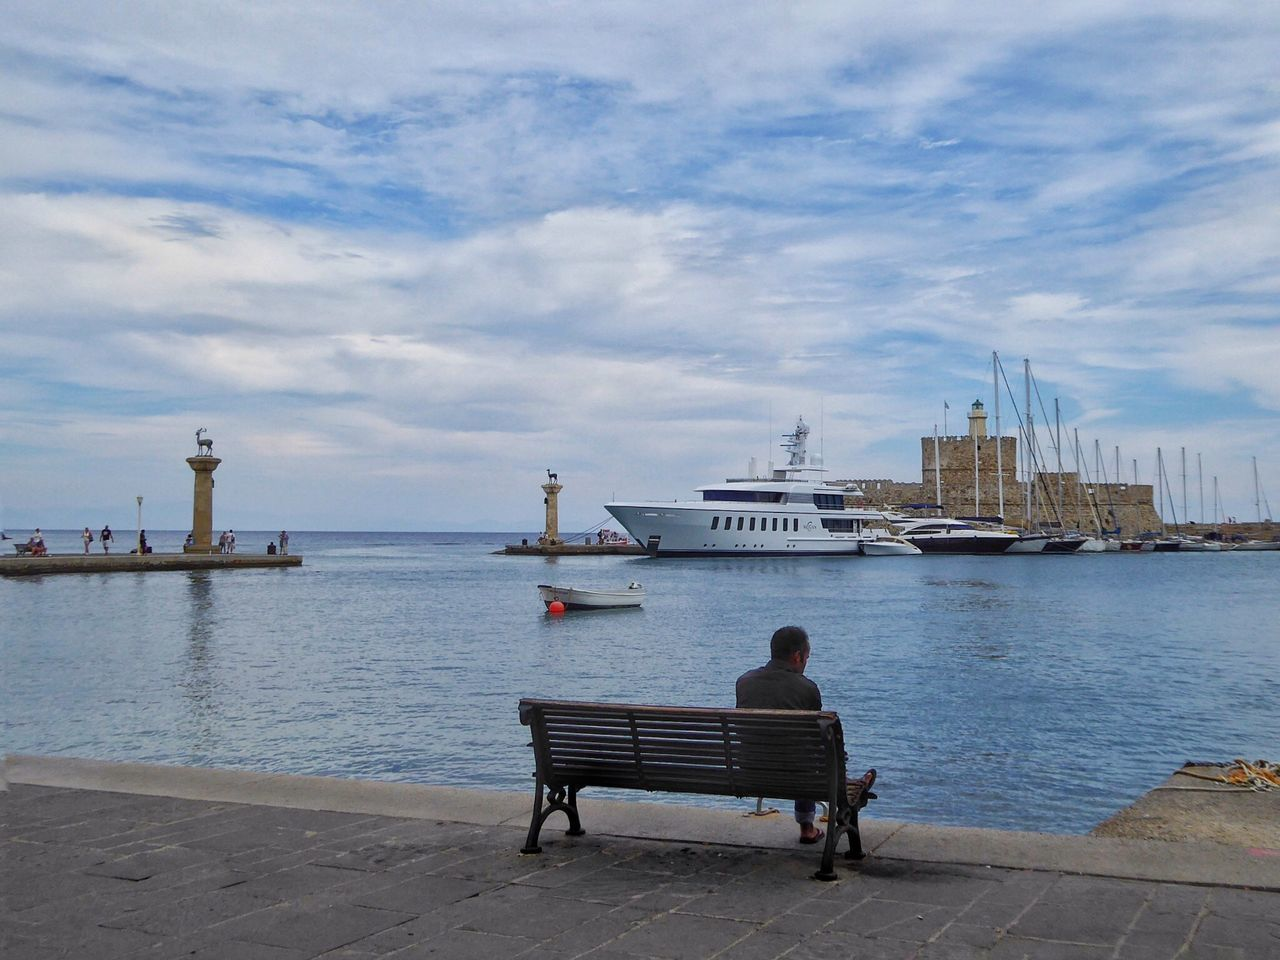 Rhodos Rhodos, Greece  Ródos Rodos Greece Greece GREECE ♥♥ Rhodes Rhodes Greece Harbour Harbour View